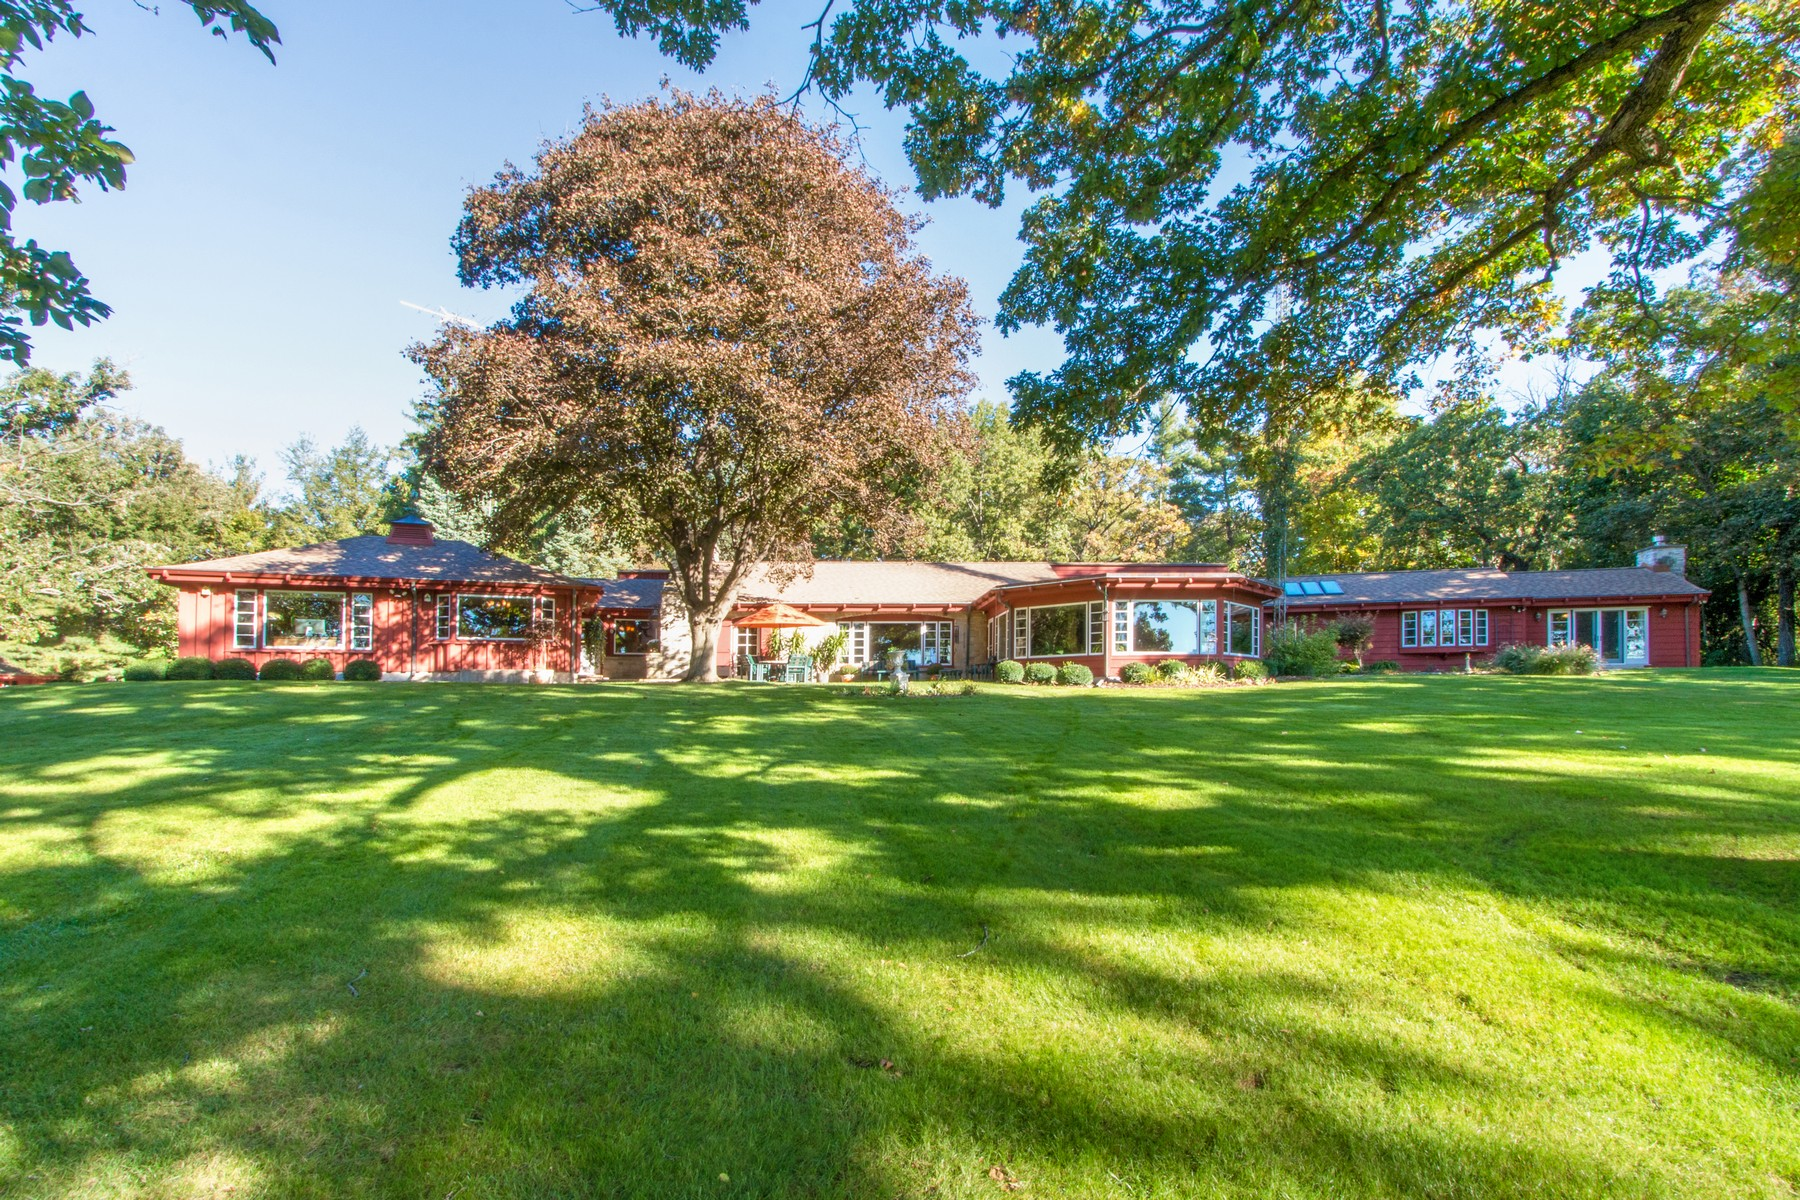 Single Family Home for Sale at Sportsman's Paradise 7220 E State Road 67 Lake Geneva, Wisconsin 53525 United States